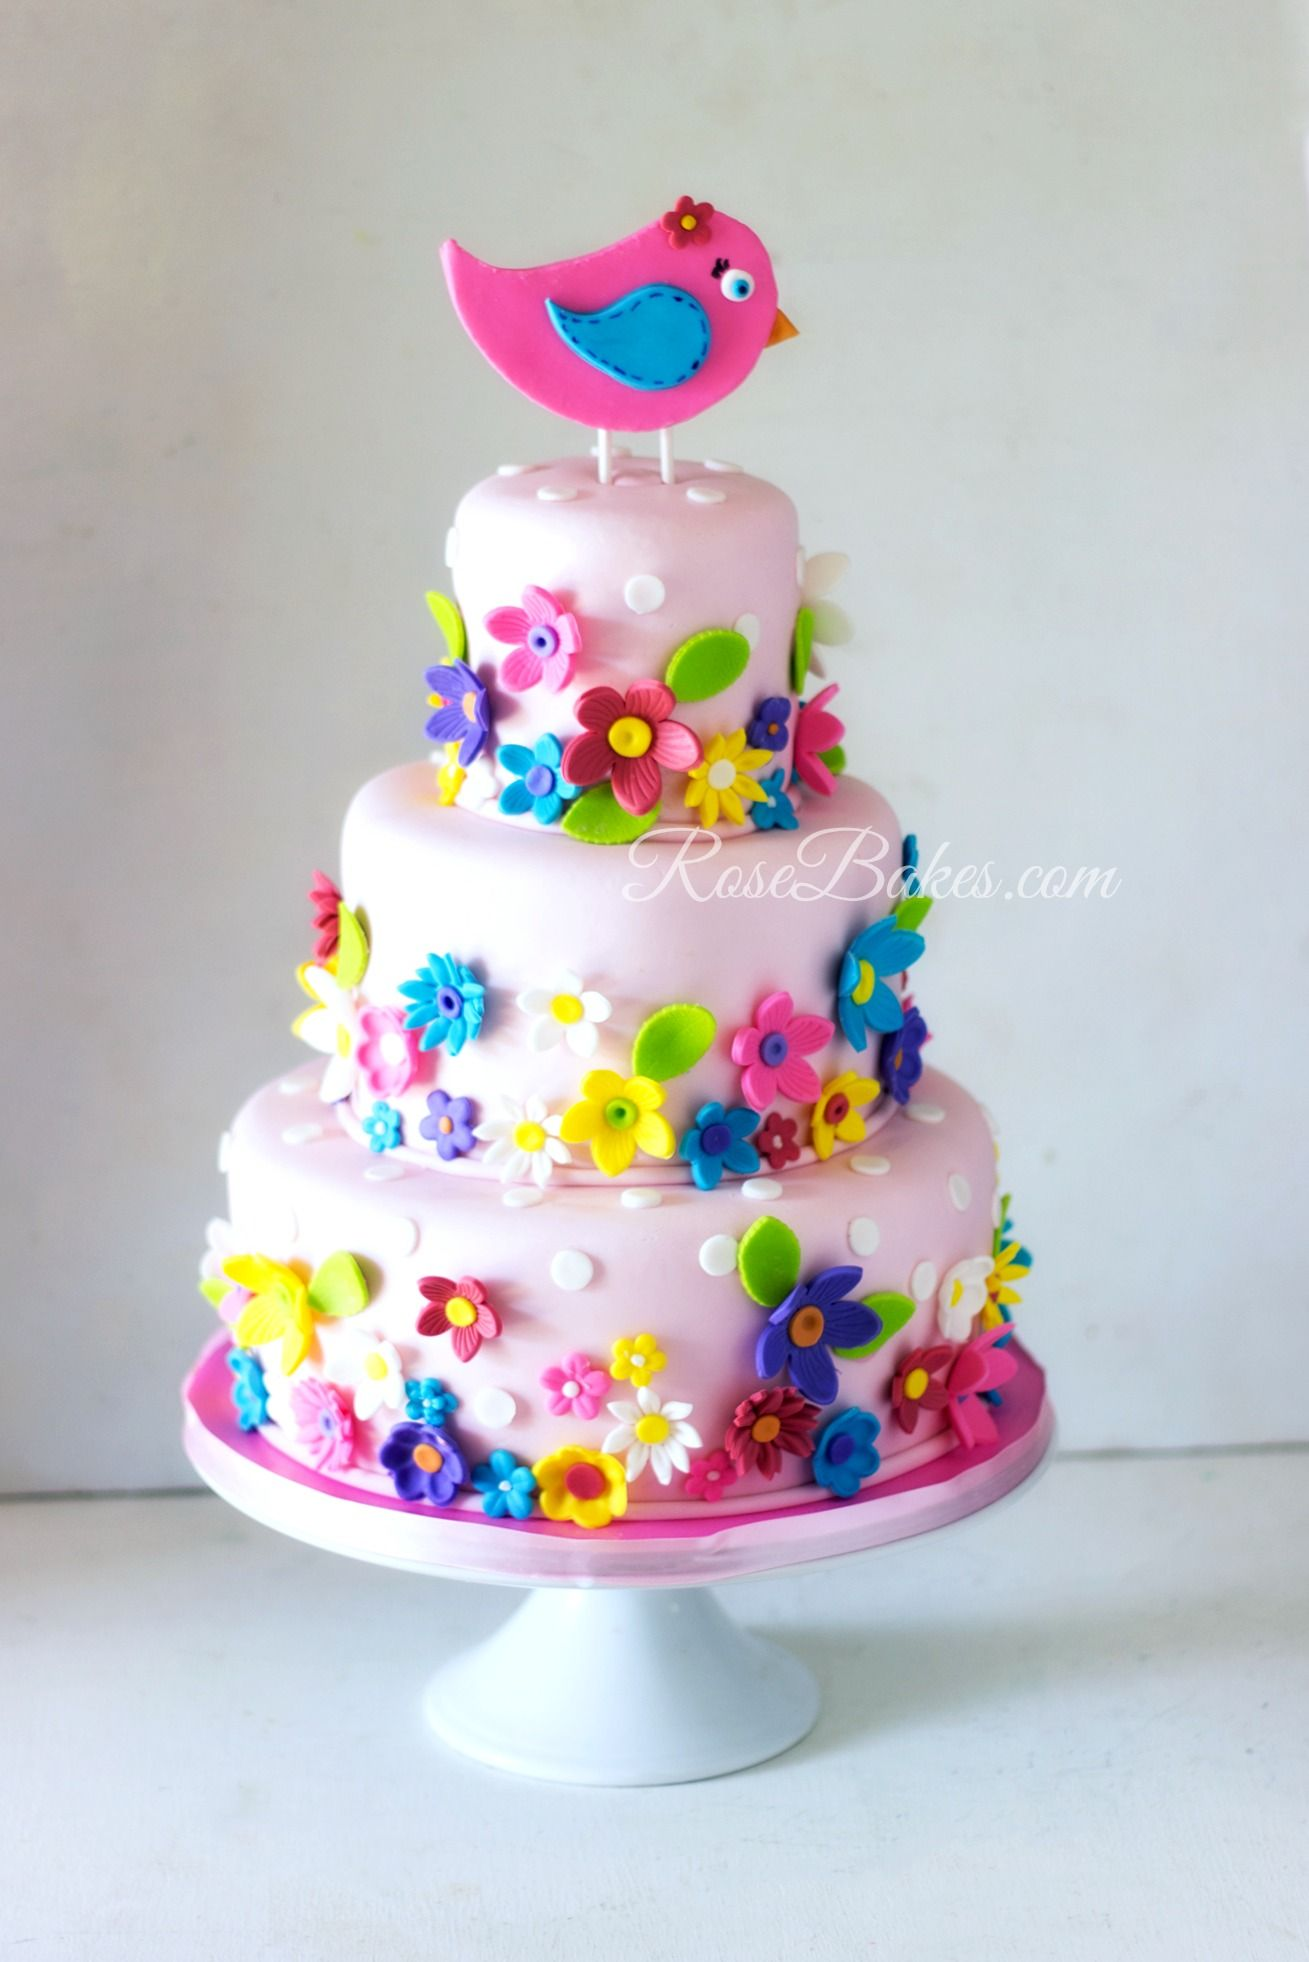 Who takes the cake voting is open birthday cakes flowers and cake spring flowers 1st birthday cake izmirmasajfo